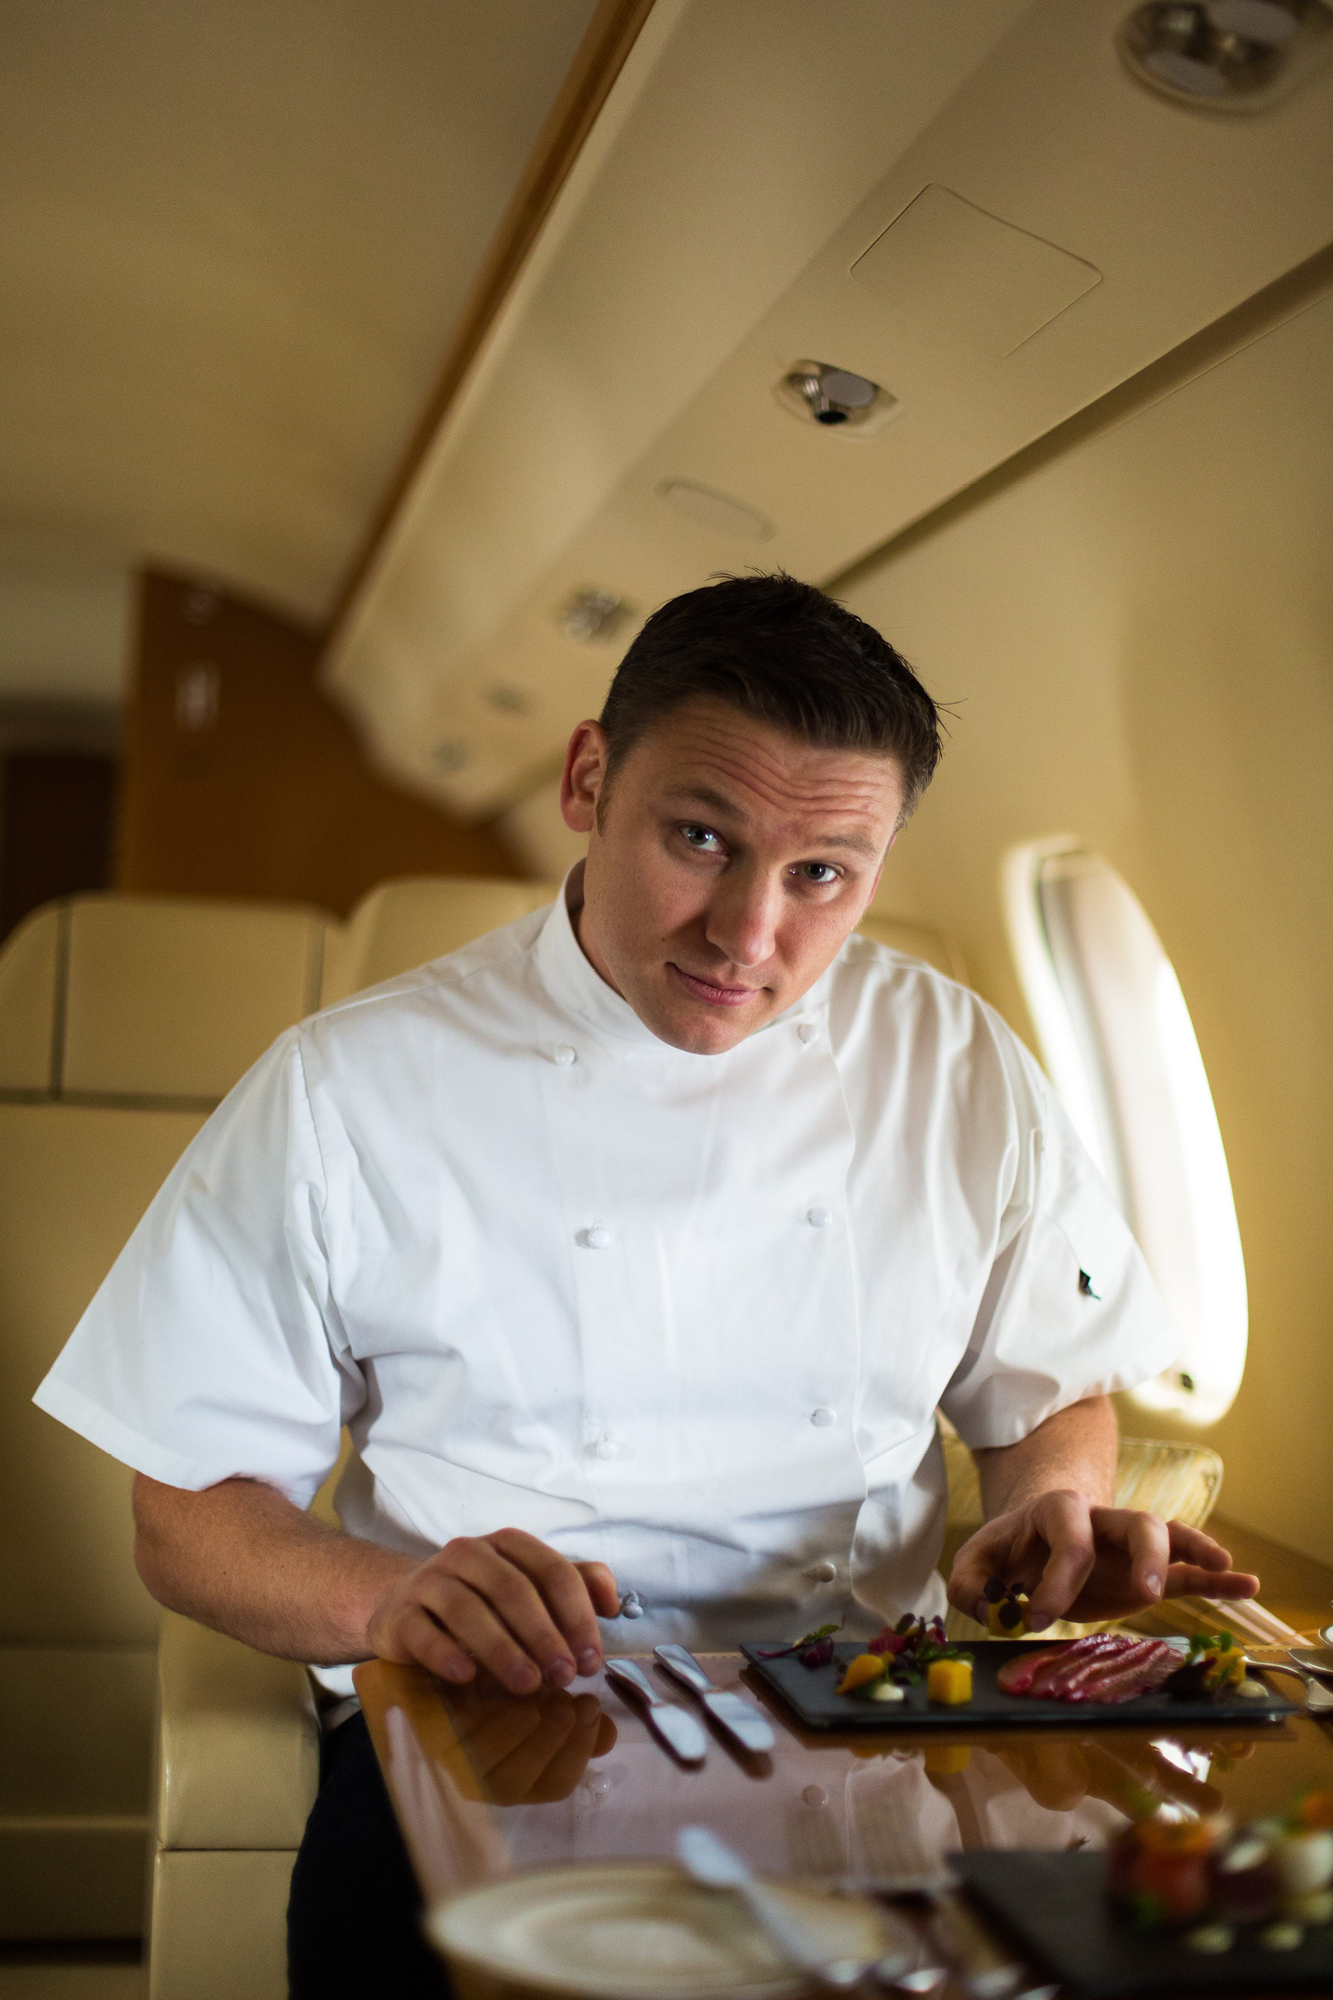 One Fine Dine is the entrepreneurial delivery service from Daniel Hulme who also runs high-end in-flight food service On Air Dining